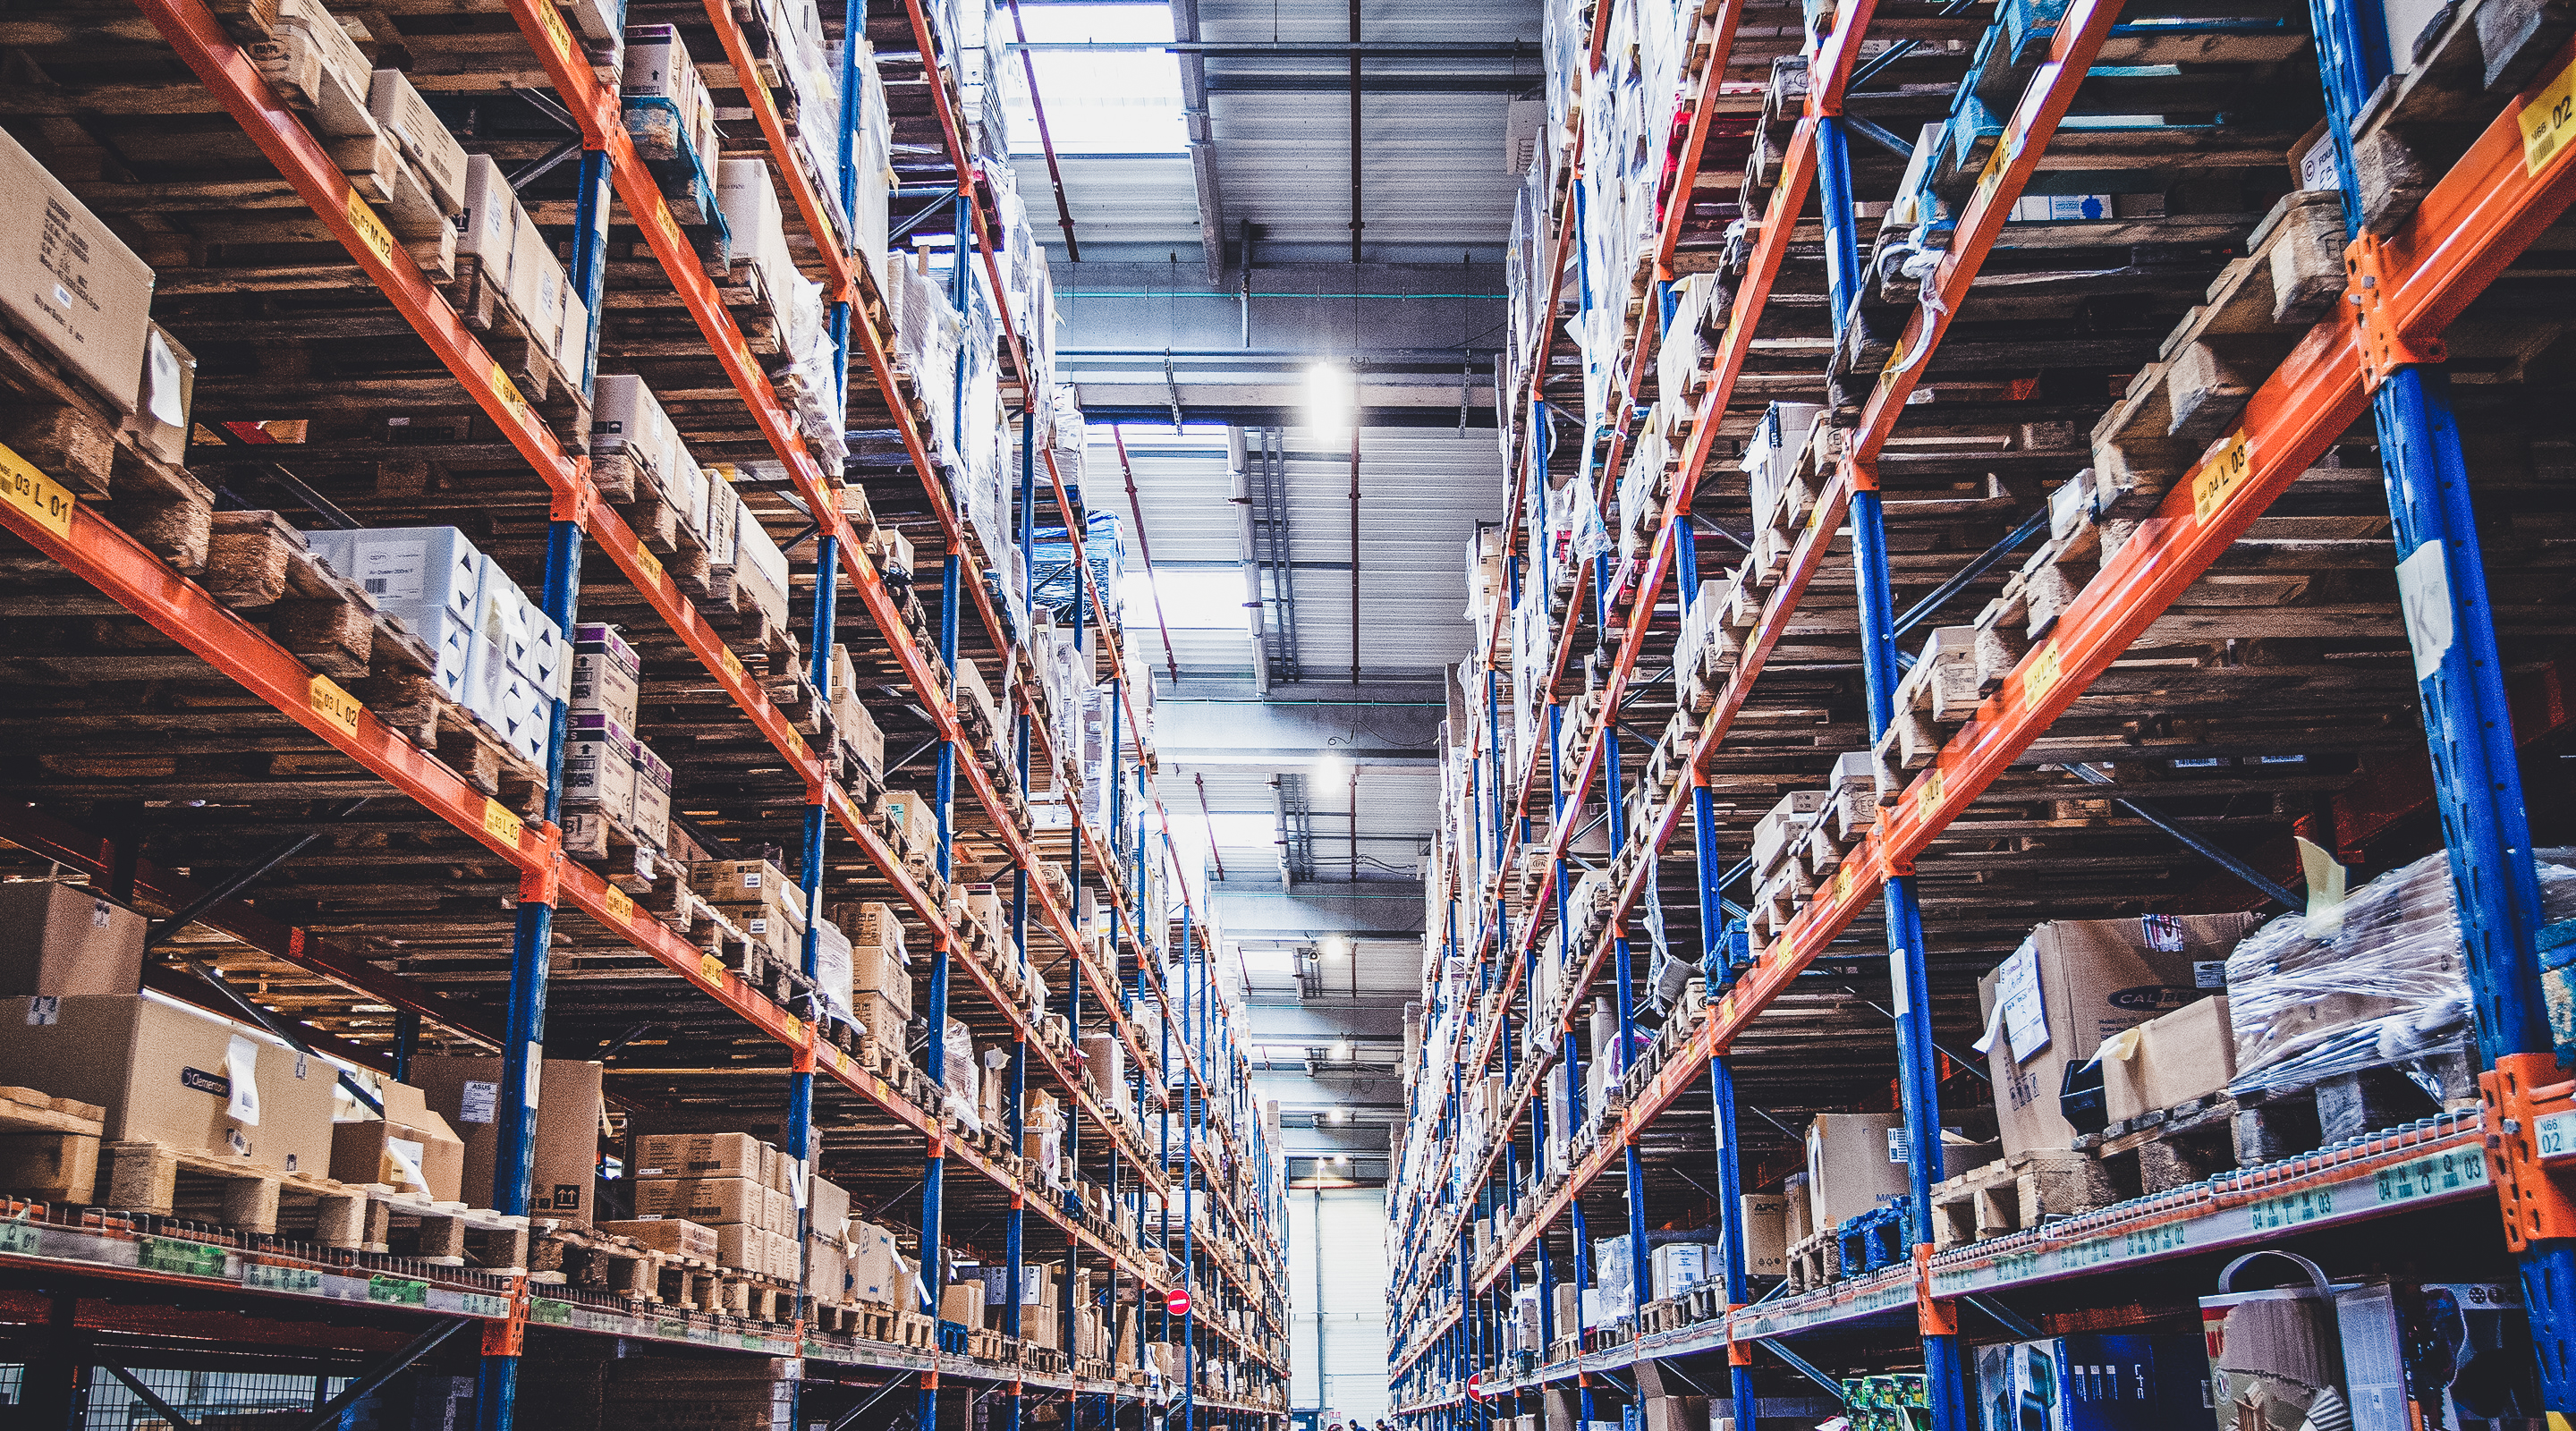 Photo of the inside of a warehouse. The shot is taken standing at the end of an aisle and you can view the entire length of the aisle. On either side is floor to ceiling racks of unidentifiable goods